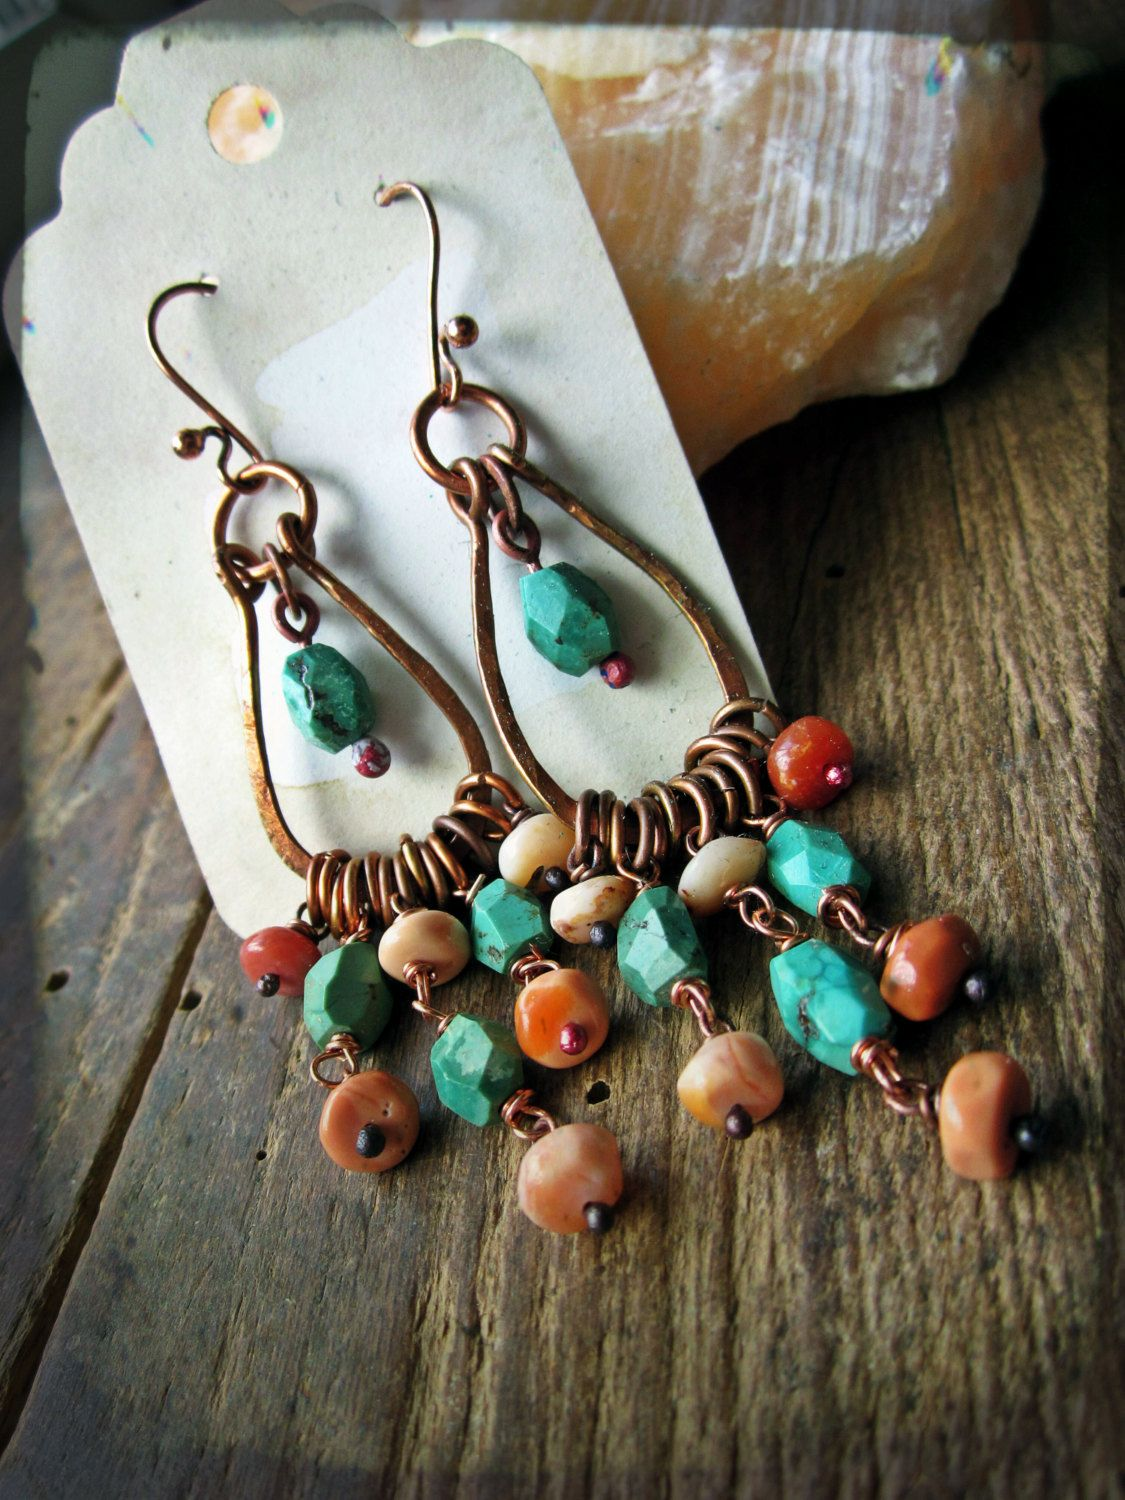 Chandelier earrings Fire opal Turquoise Raw copper by HerWhimsy